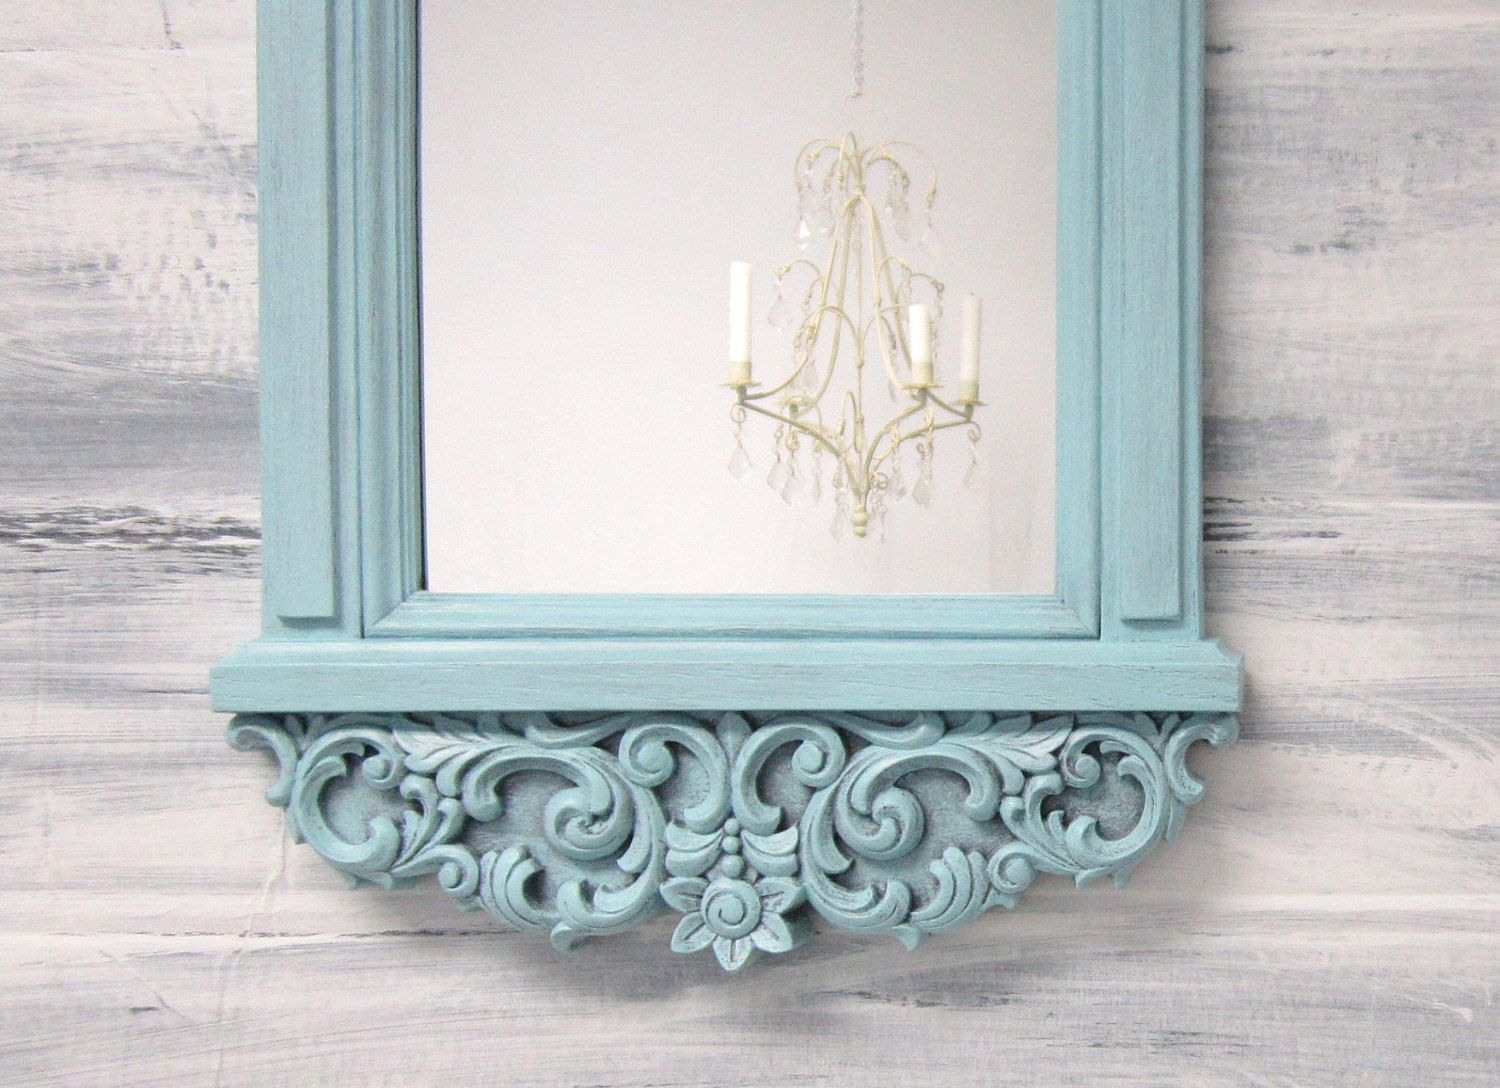 White hollywood regency mirror for sale decor wall mirror - Shabby chic decor for sale ...